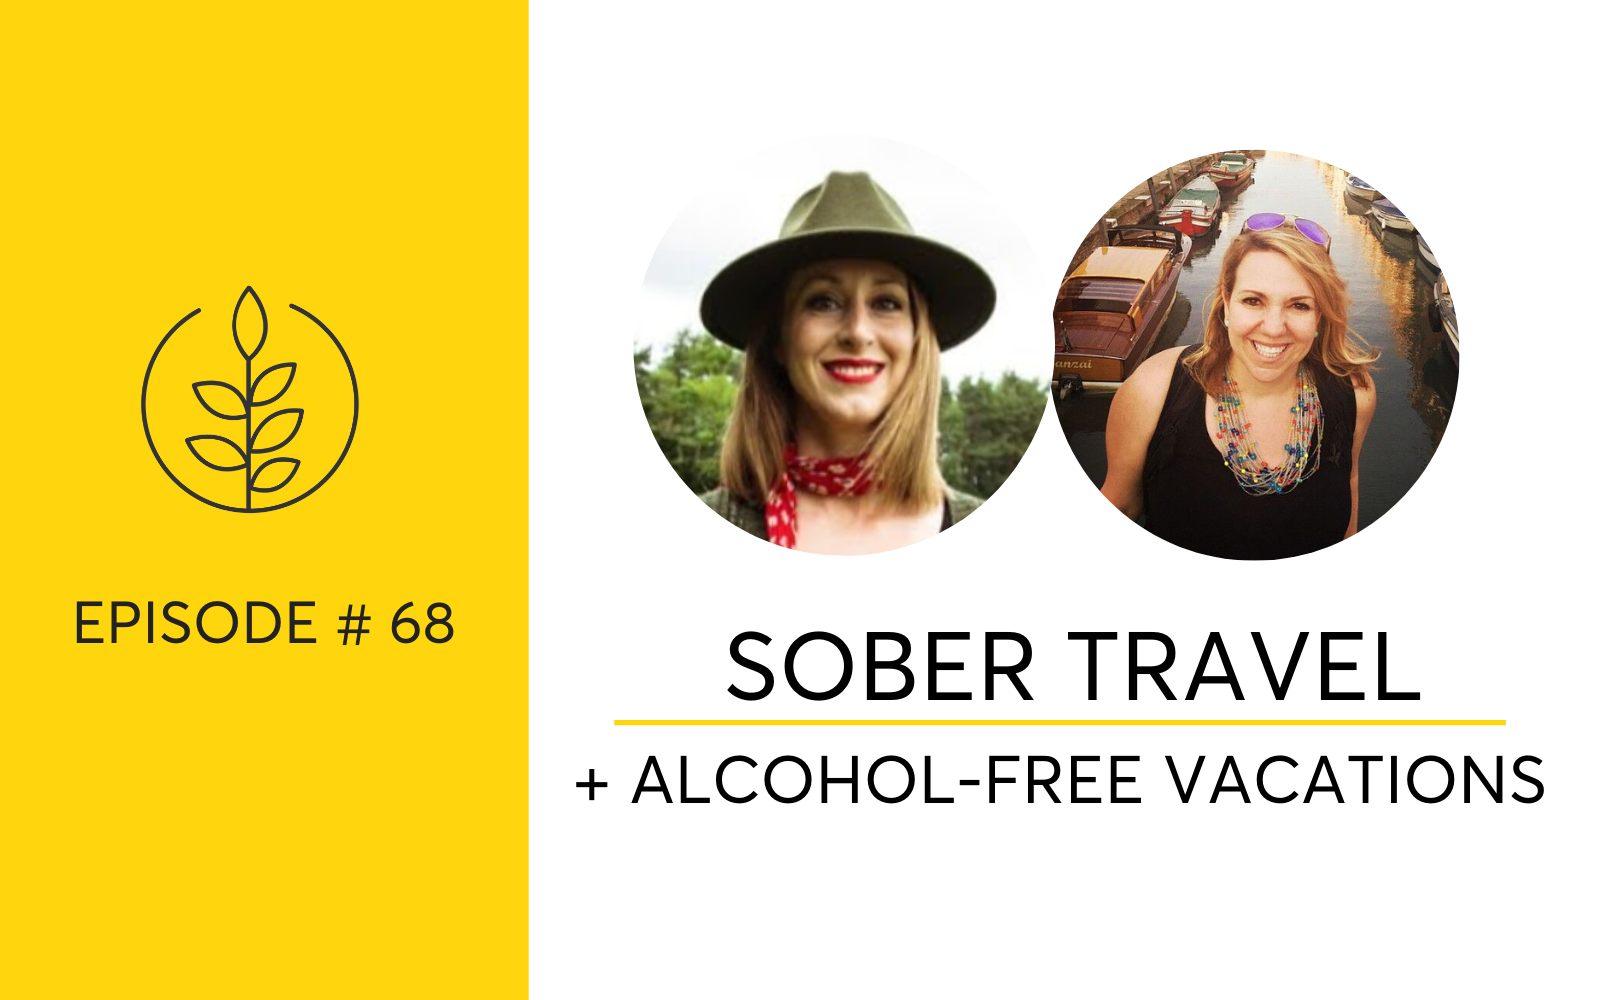 Sober Travel: How To Take An Alcohol-Free Vacation